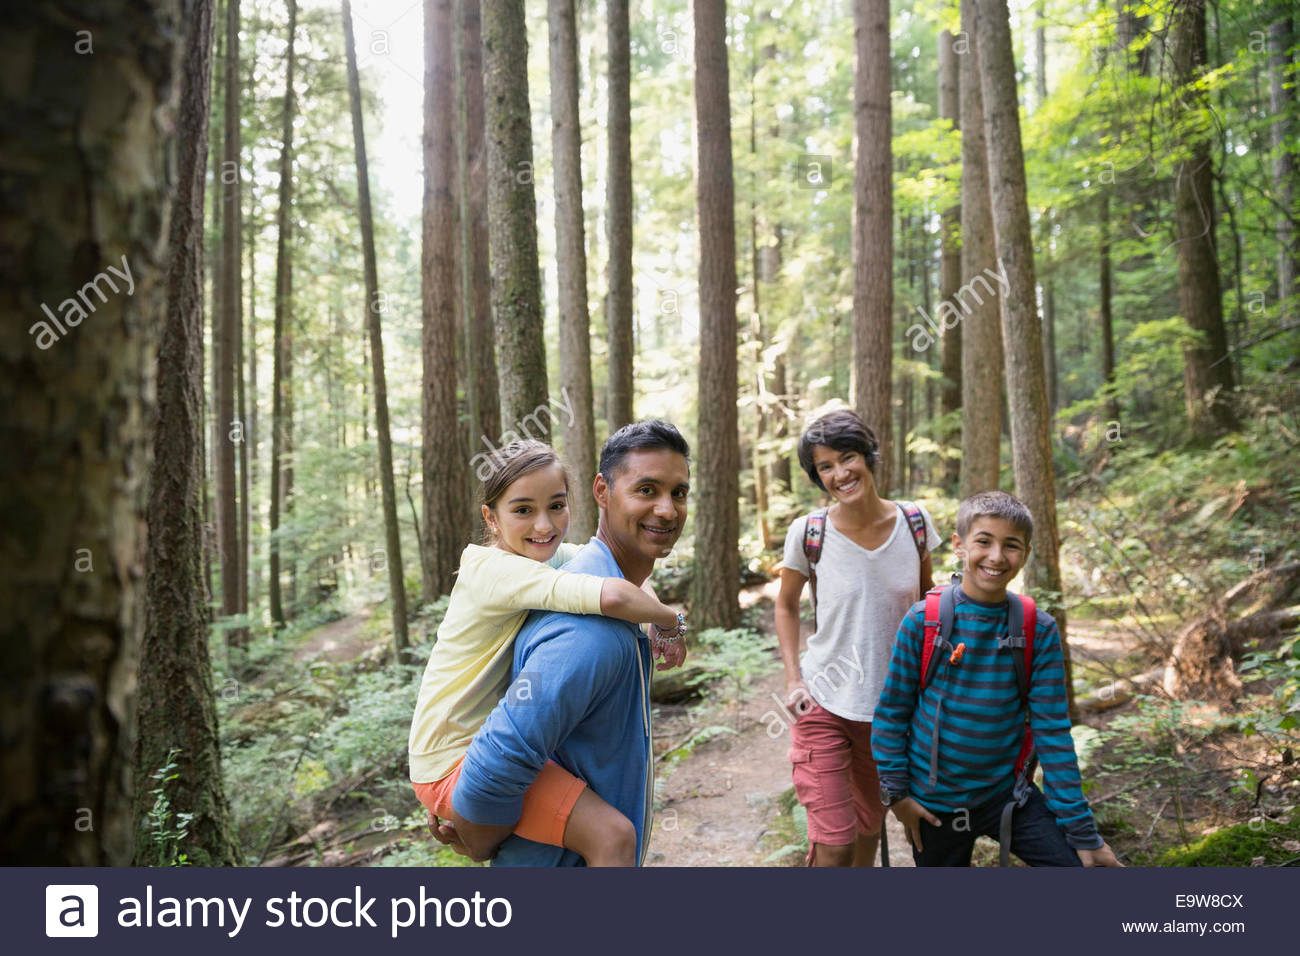 Portrait of smiling family on trail in woods - Stock Image